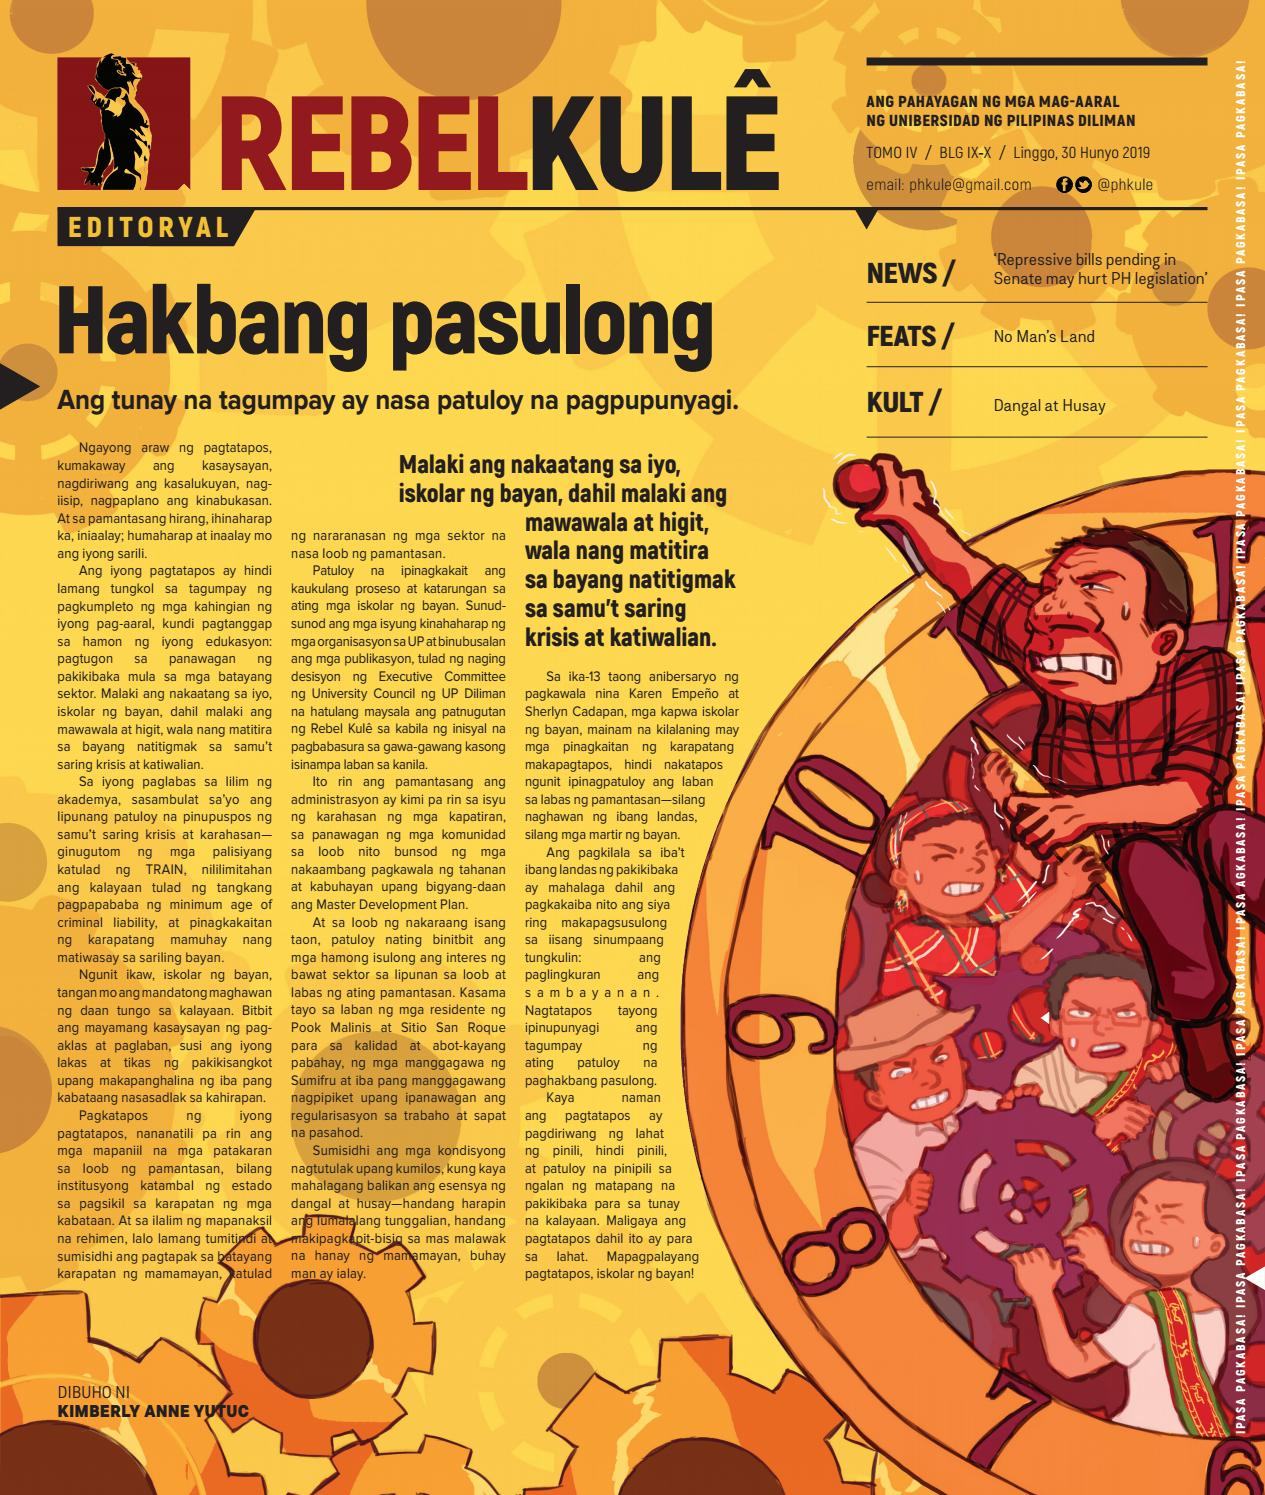 Rebel Kule Tomo 4 Isyu 9-10 by Philippine Collegian - issuu